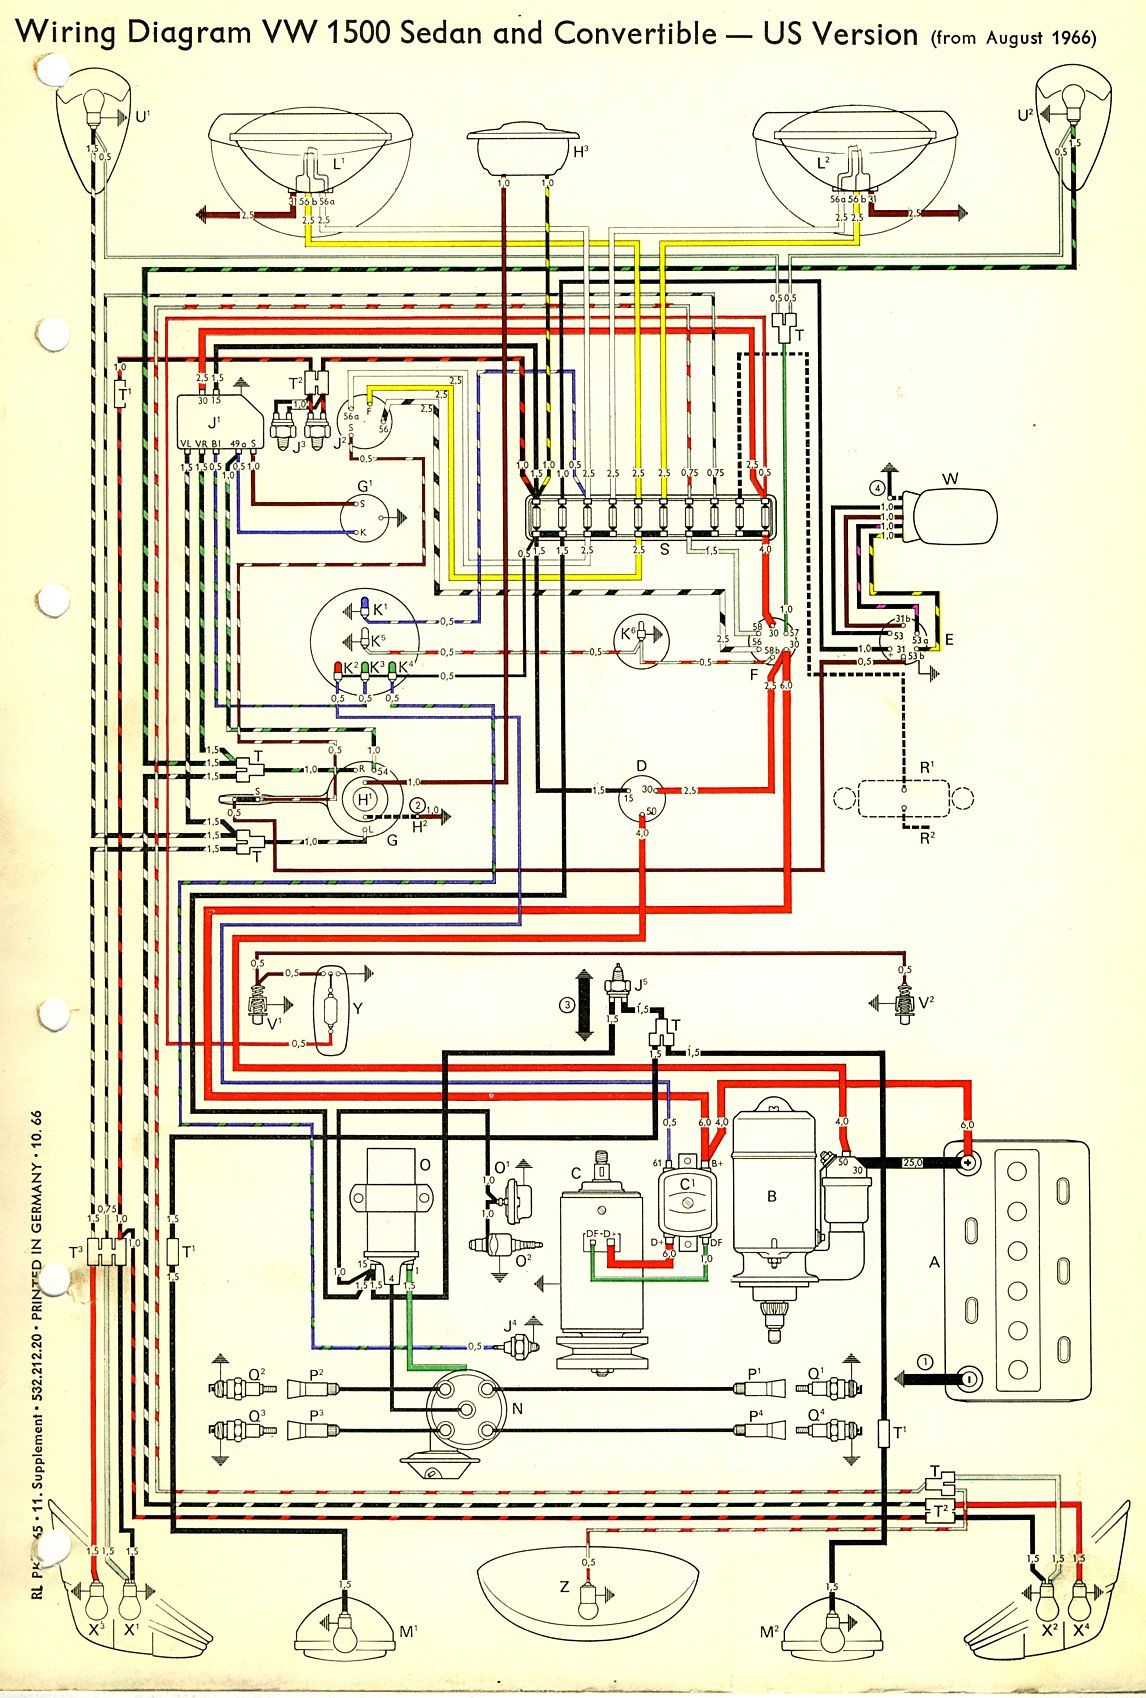 1adf990c0efb617c789fdd21338448b0 1967 beetle wiring diagram (usa) thegoldenbug com best 1967 vw vw bug wiring diagram at mifinder.co